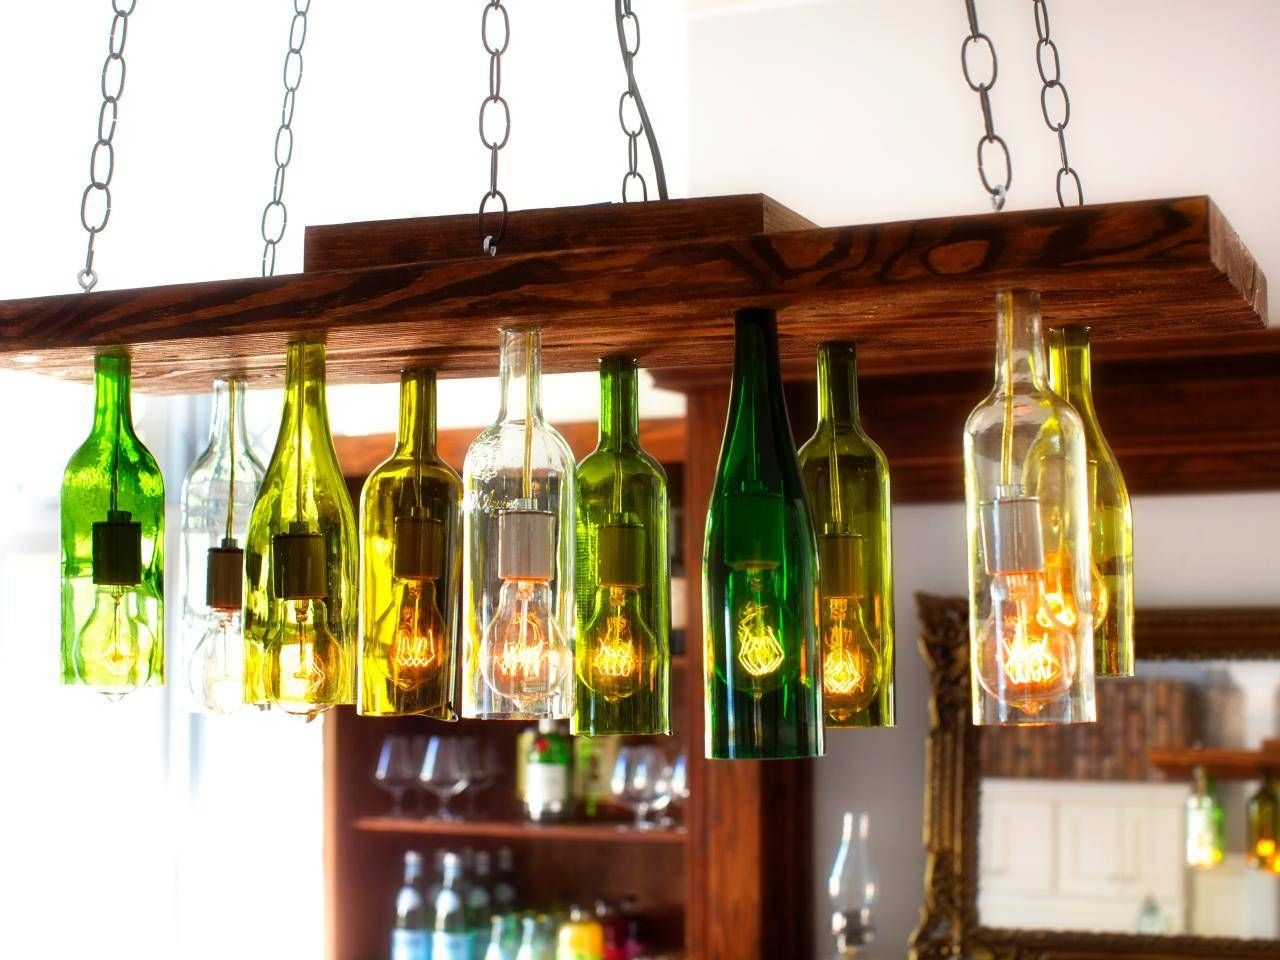 How To Make A Chandelier From Old Wine Bottles | How-Tos | Diy with Wine Glass Lights Fixtures (Image 6 of 15)